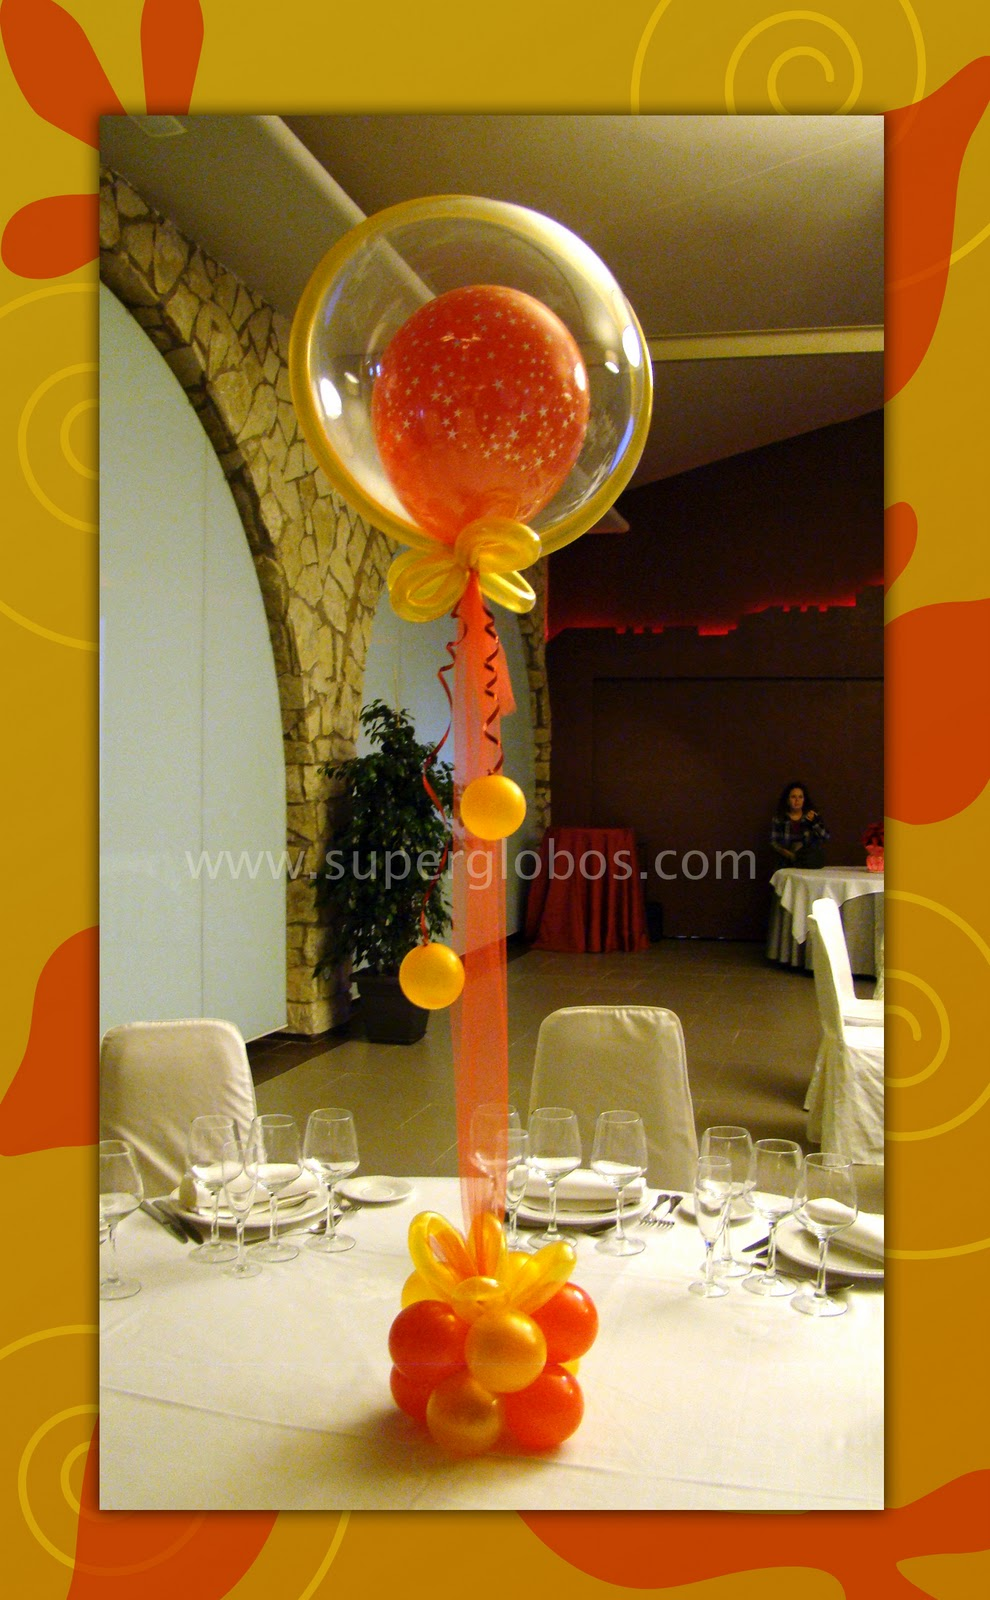 Decoraciones con globos for Decoracion con globos